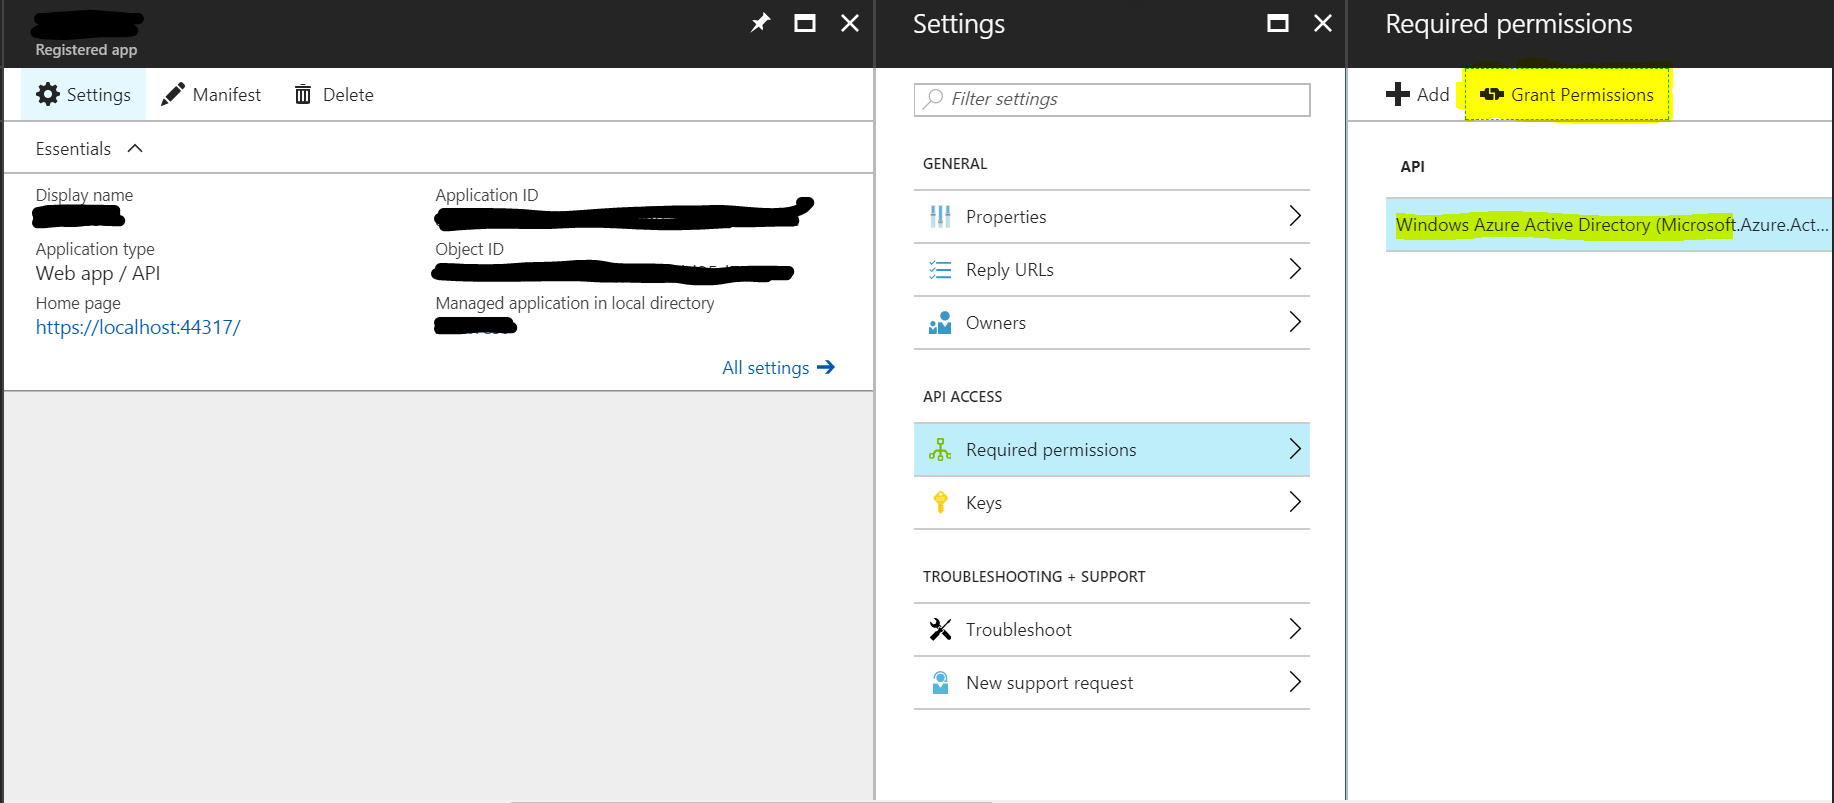 re  what is the grant permissions button for azure ad webapp - microsoft tech community